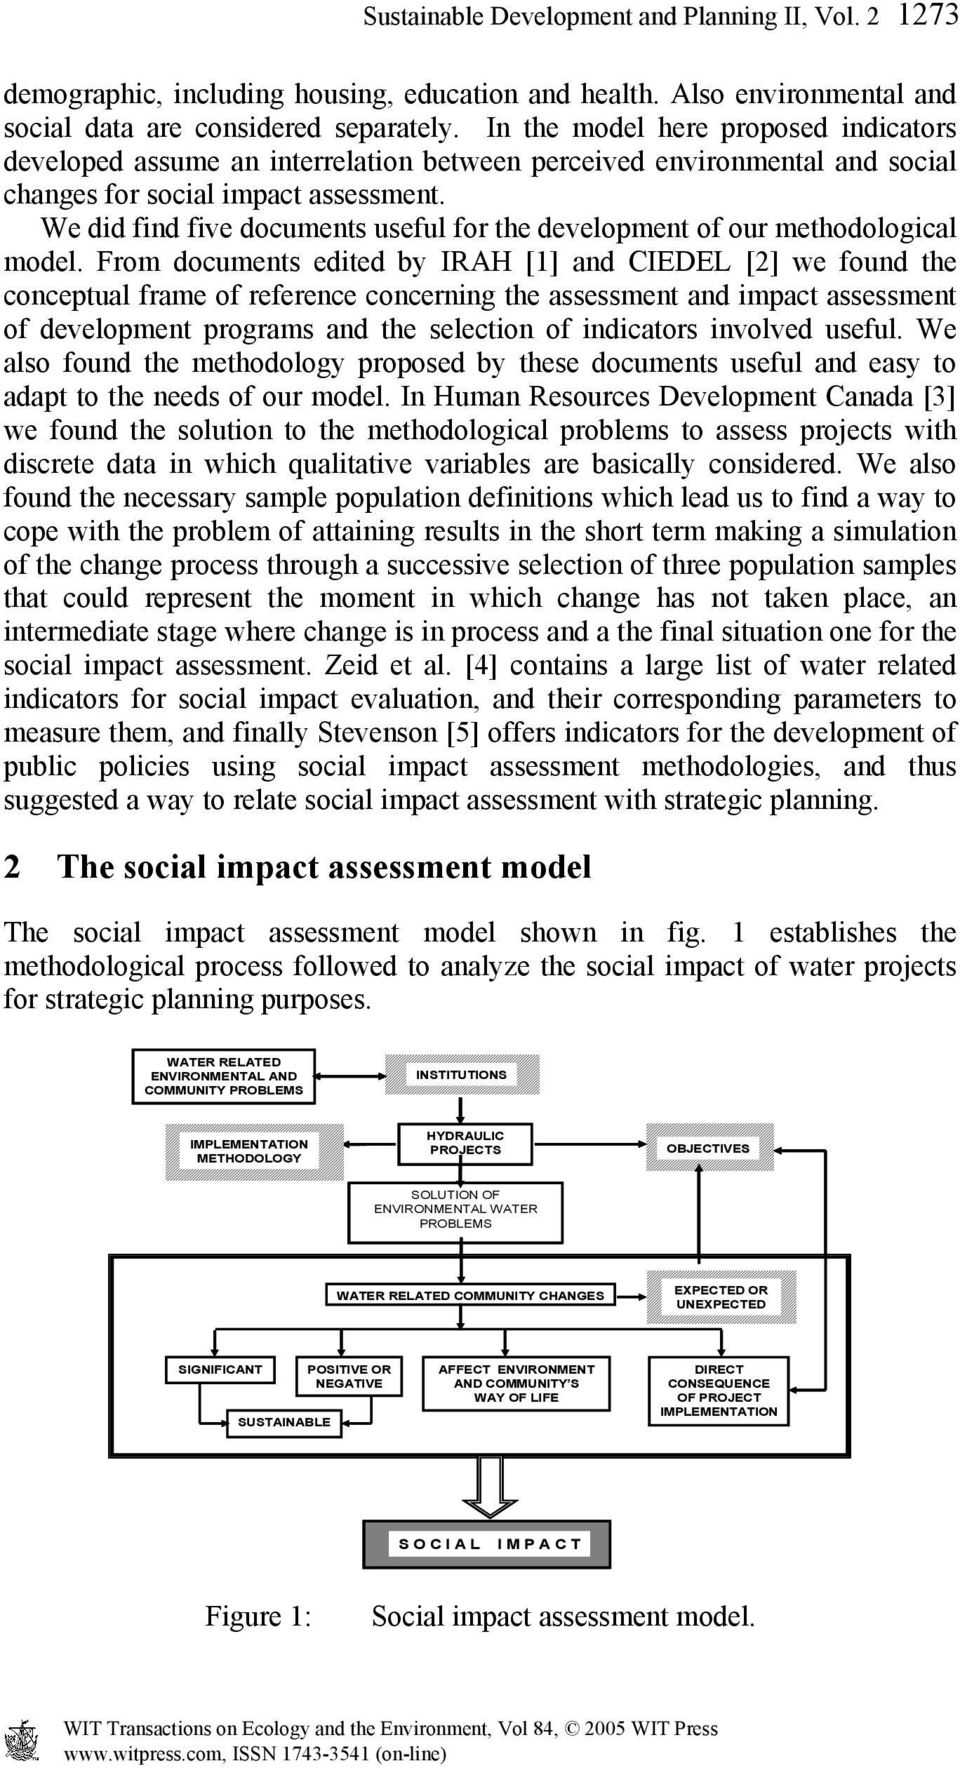 We did find five documents useful for the development of our methodological model.